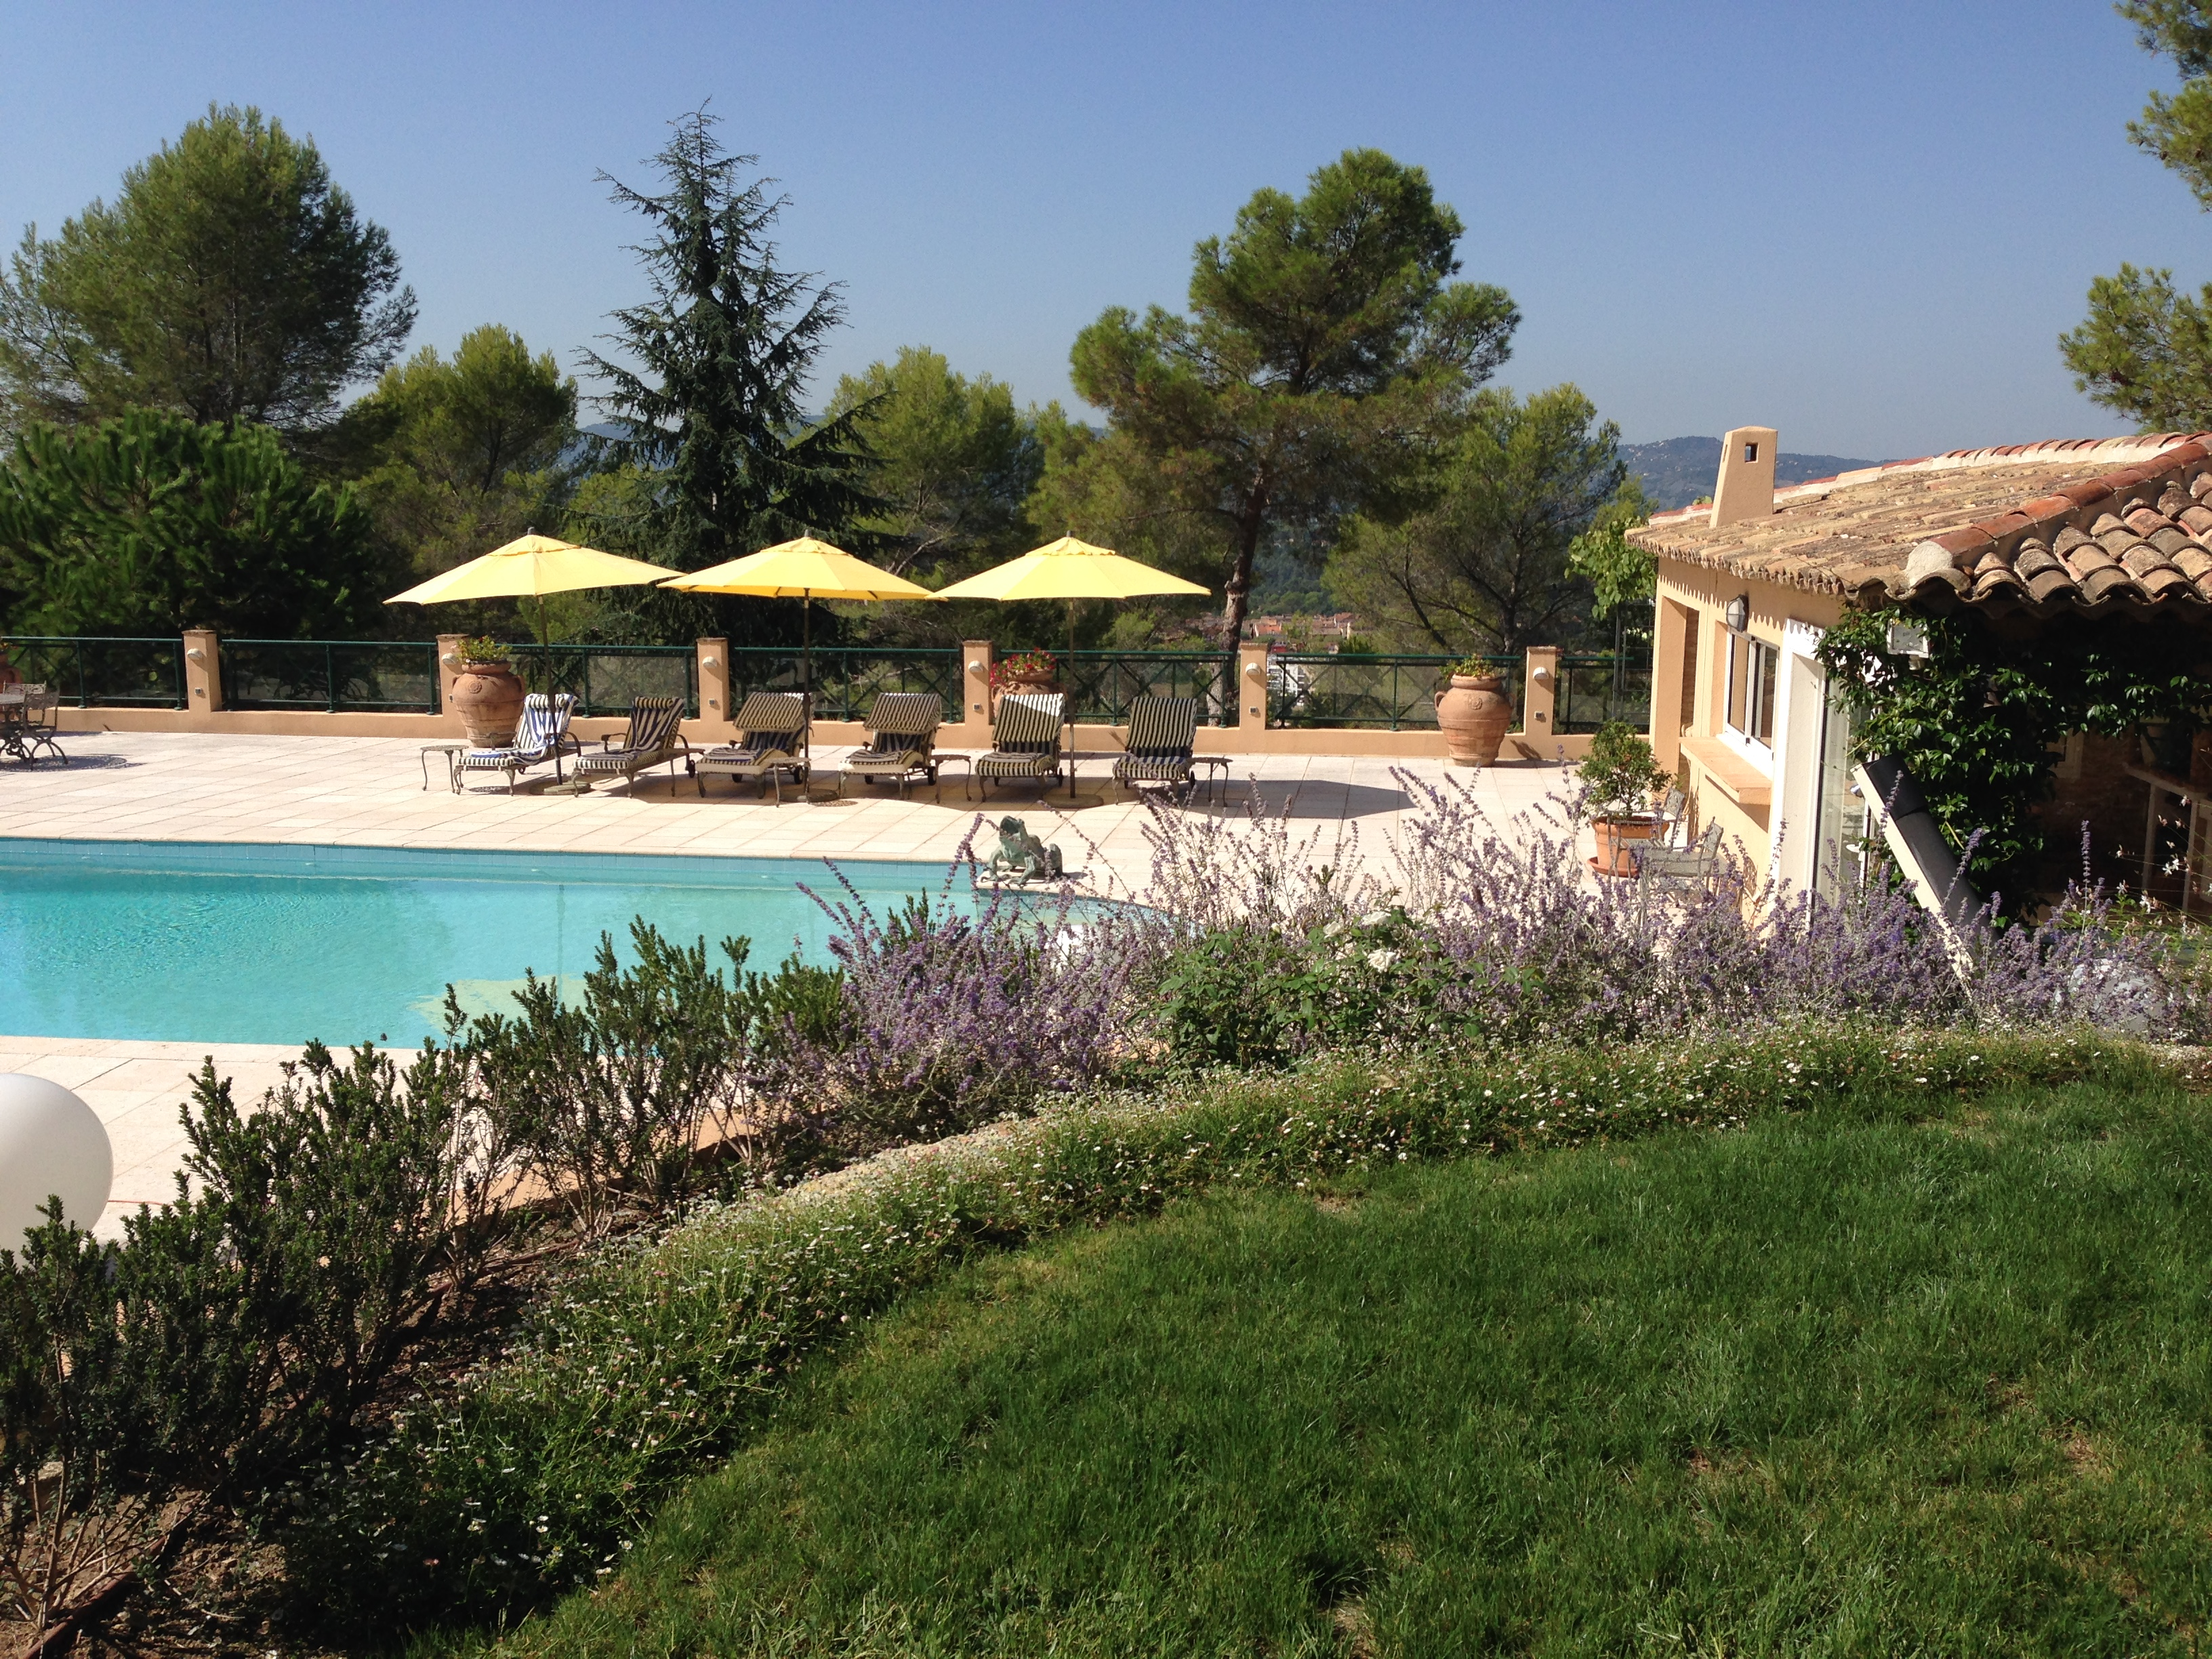 The young border which will keep the view open  towards the pool even when it matures.